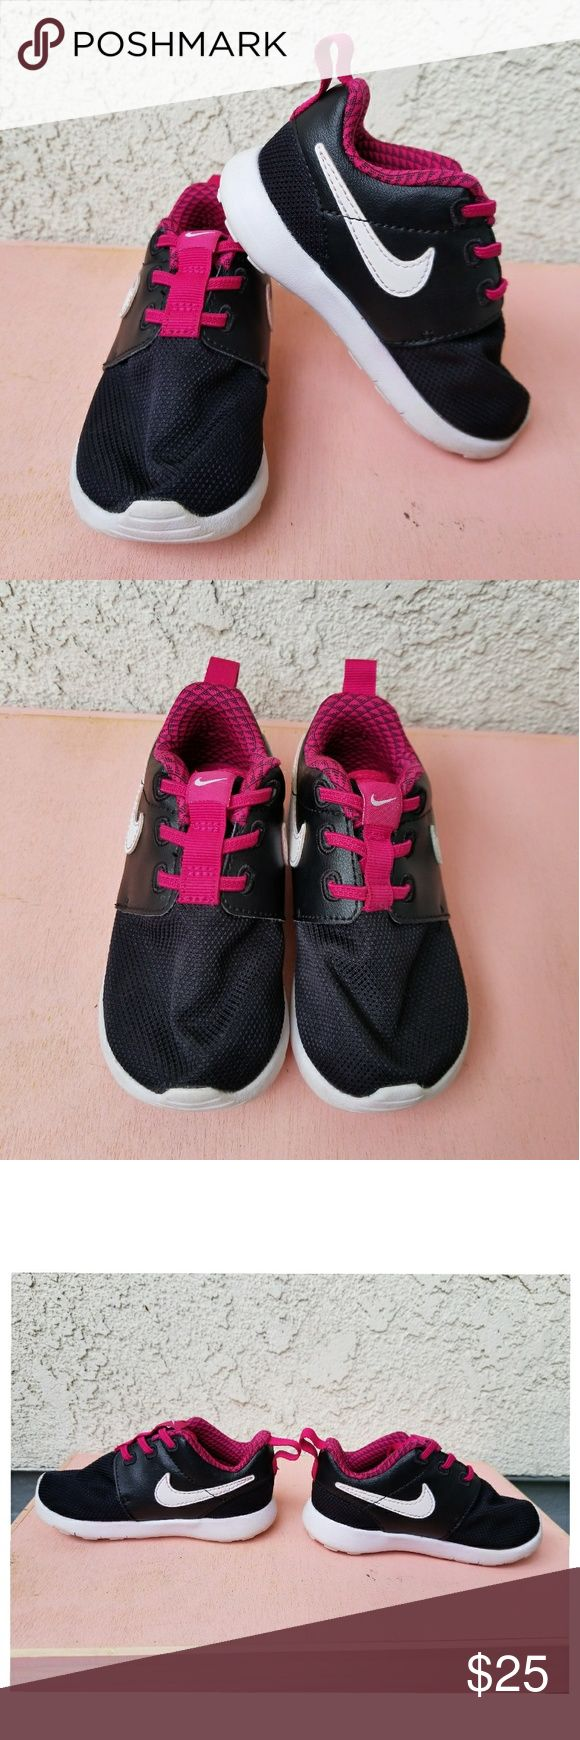 Toddler Girls Nike Shoe w/Fuchsia Toddler Girls Black and white shoe with Fuchsia lining. Great condition. Size 6. Perfect for every toddler, the laces always stay put, they don't unravel. Nike Shoes Sneakers